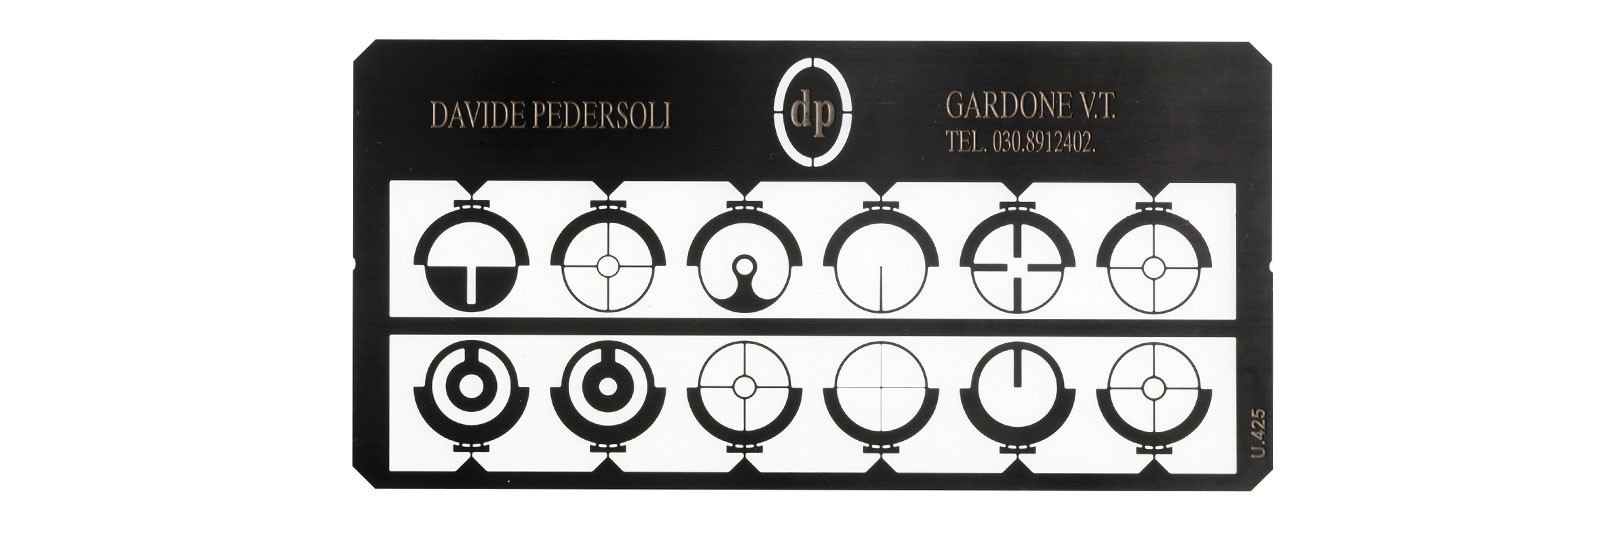 12 tunnel sight inserts set for cartridge firearms